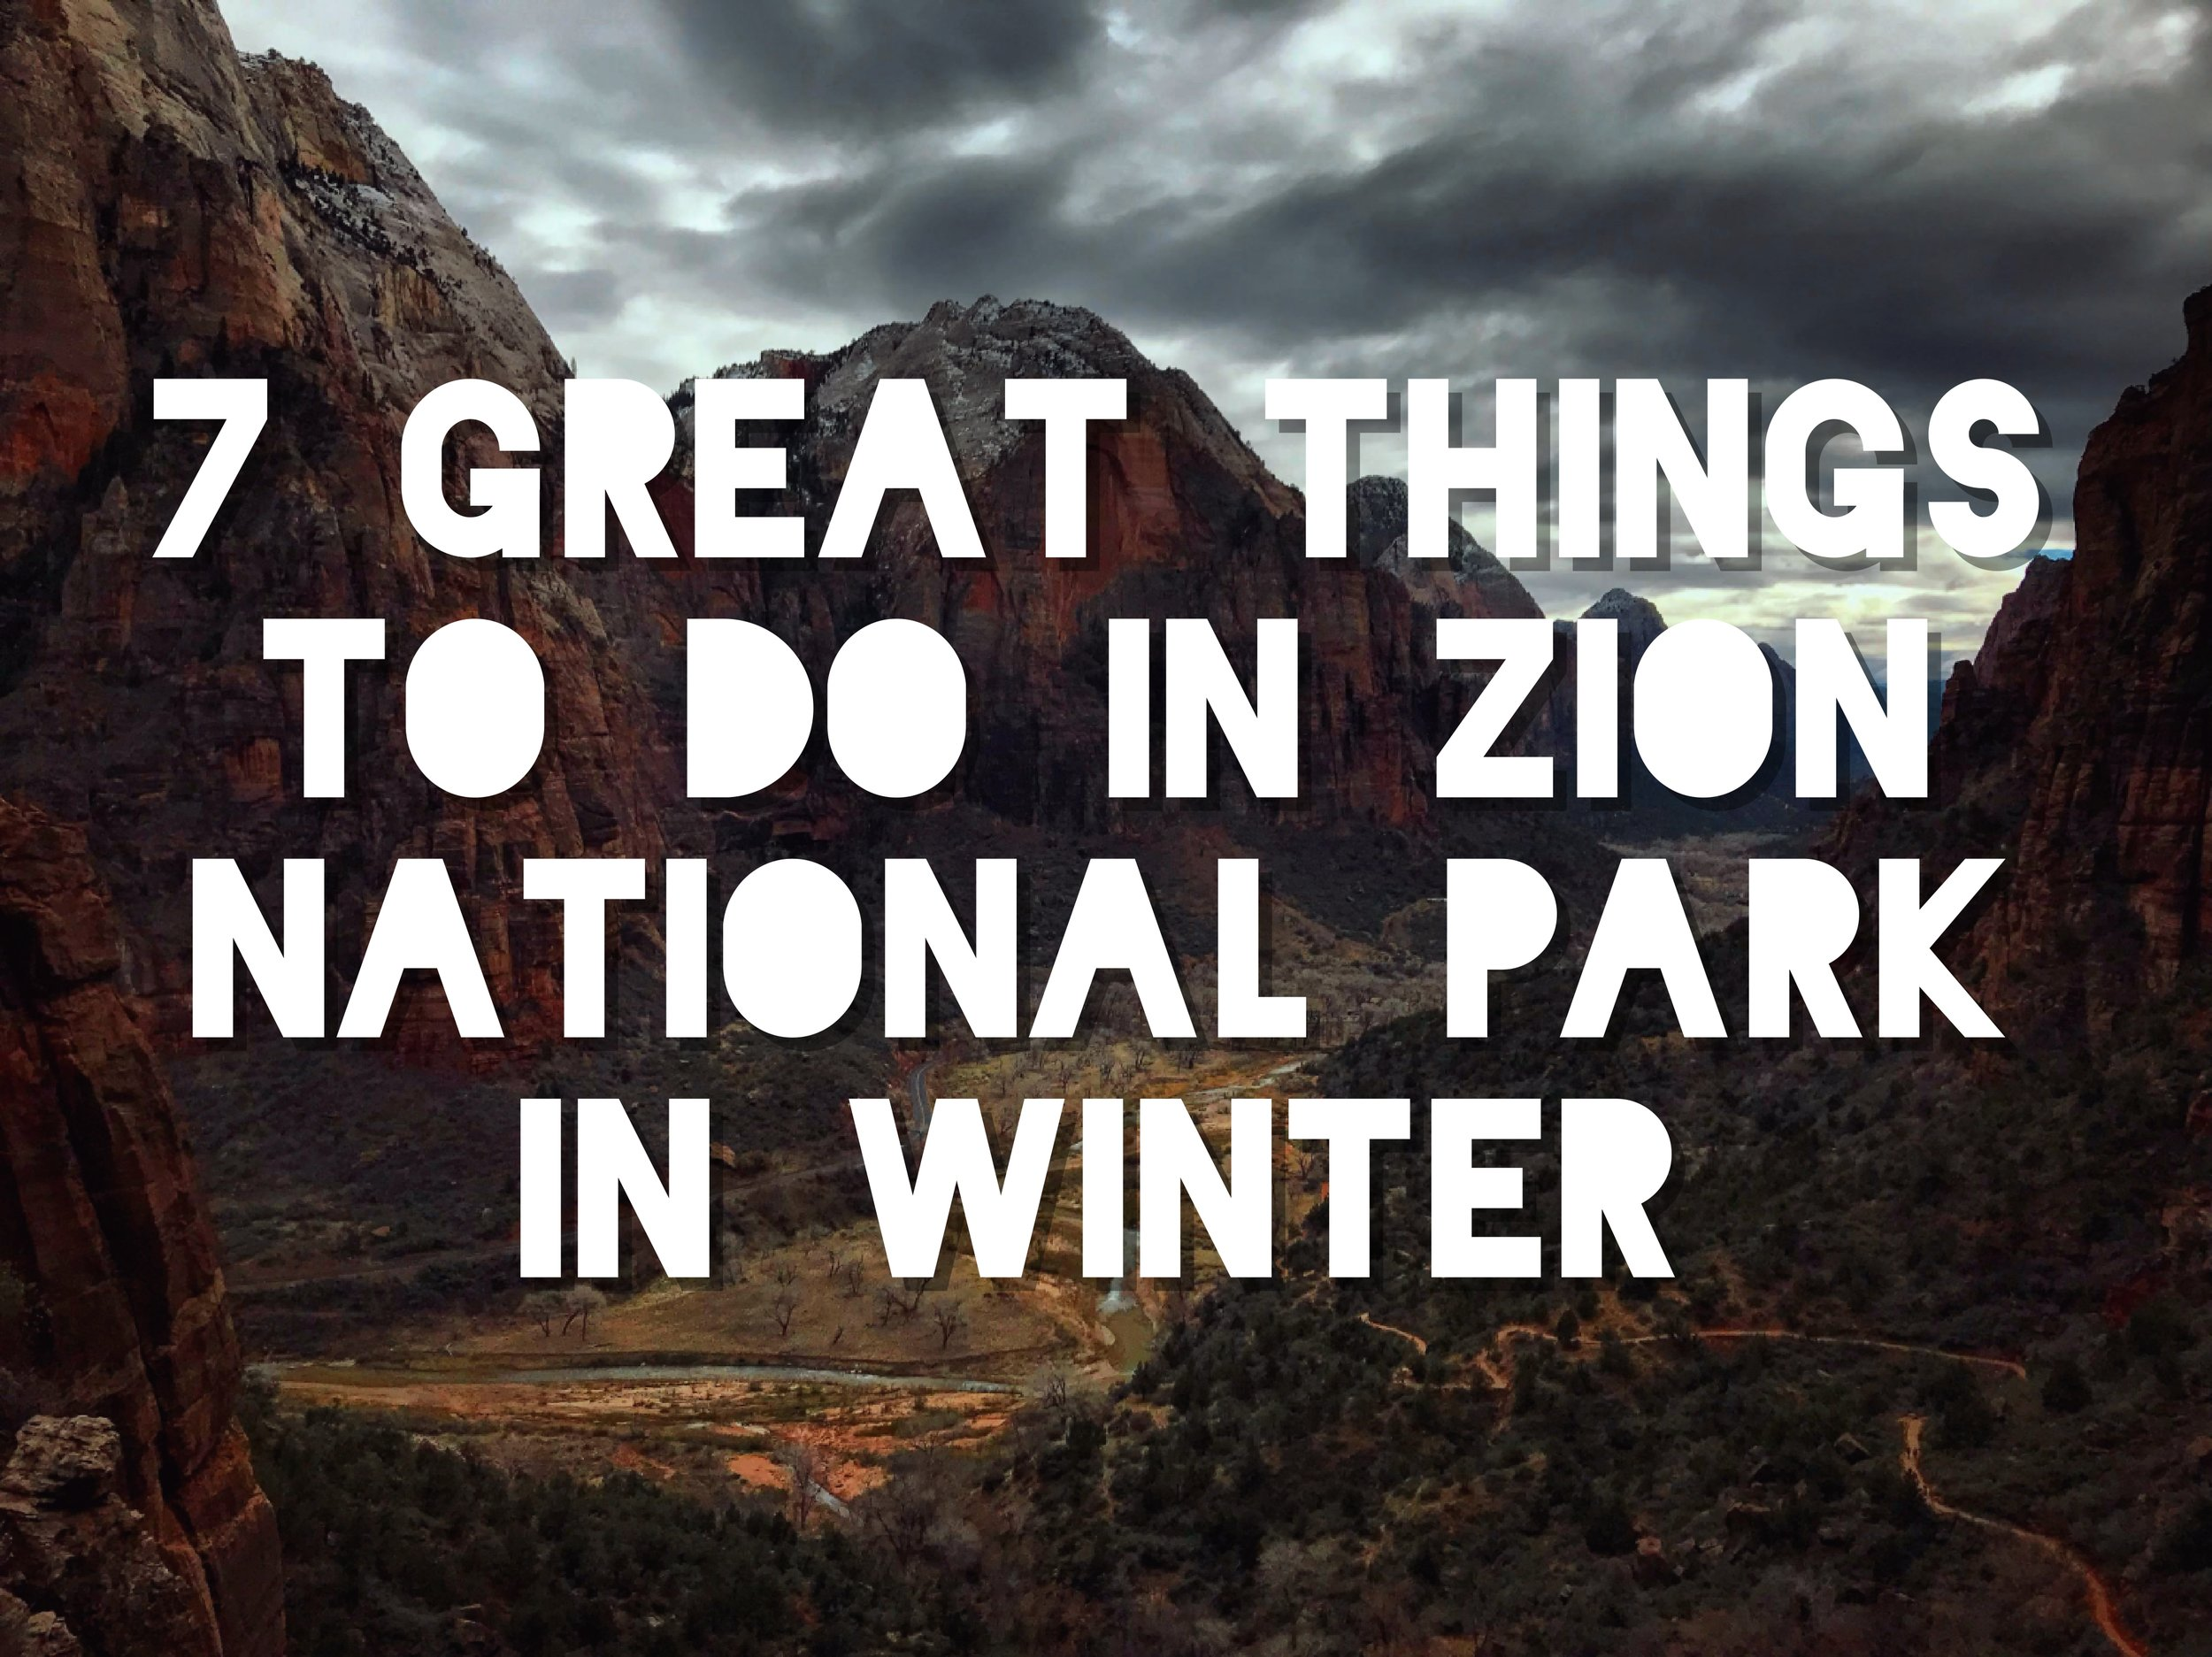 7GreatThingstoDoInZionNationalParkInWinter.jpg